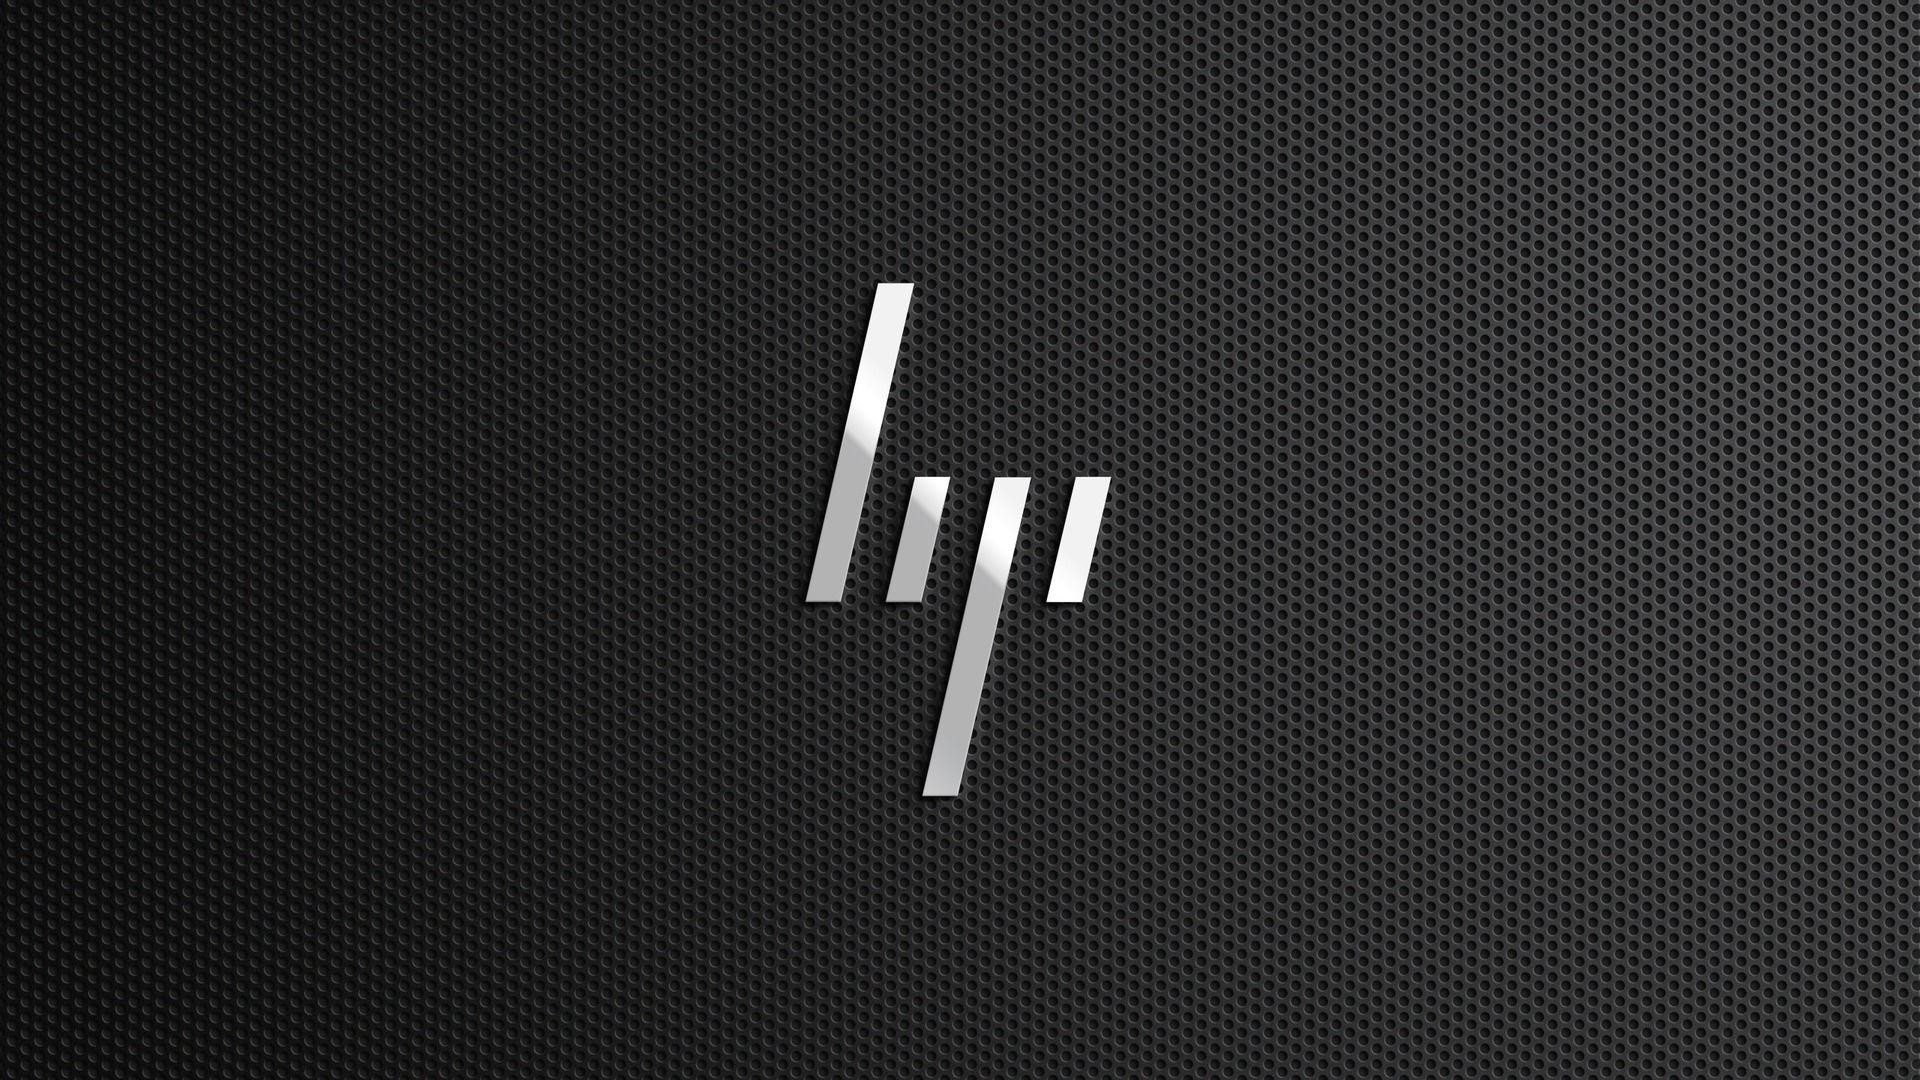 Hp Wallpapers Wallpapers All Superior Hp Wallpapers Backgrounds Wallpapersplanet Net